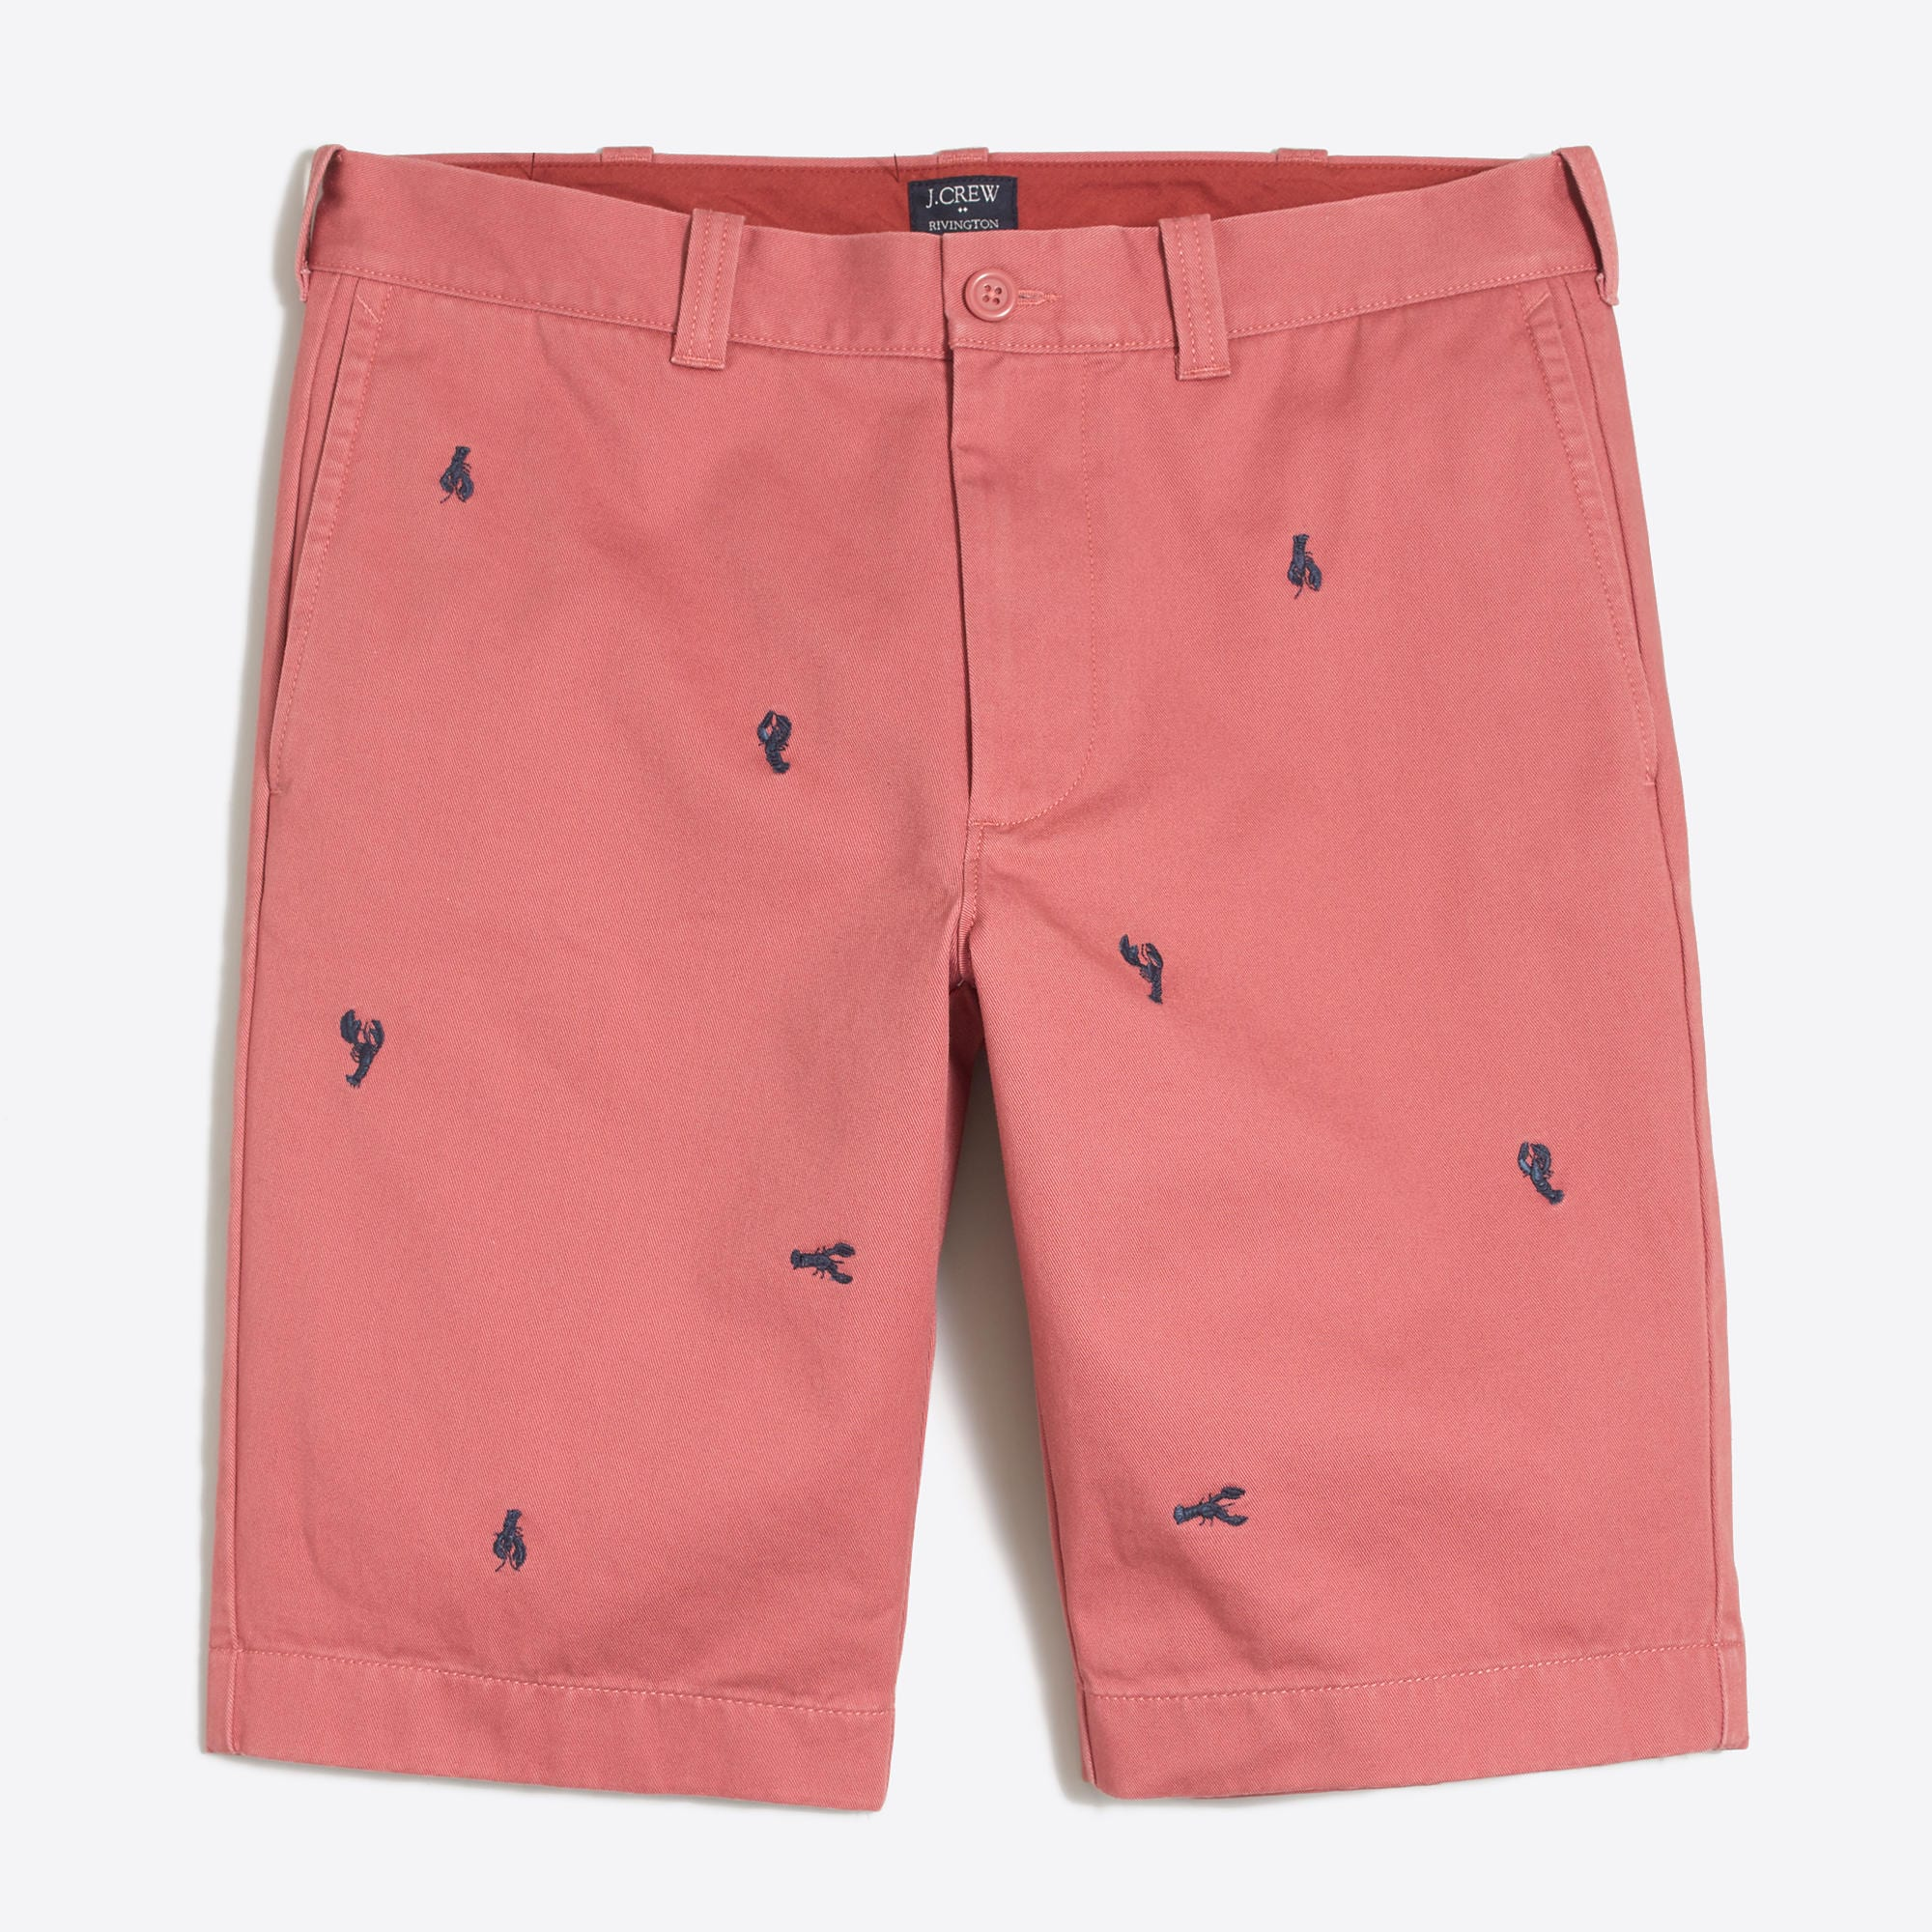 mens-lobster-shorts-in-smoke-red-2017-2018-summer